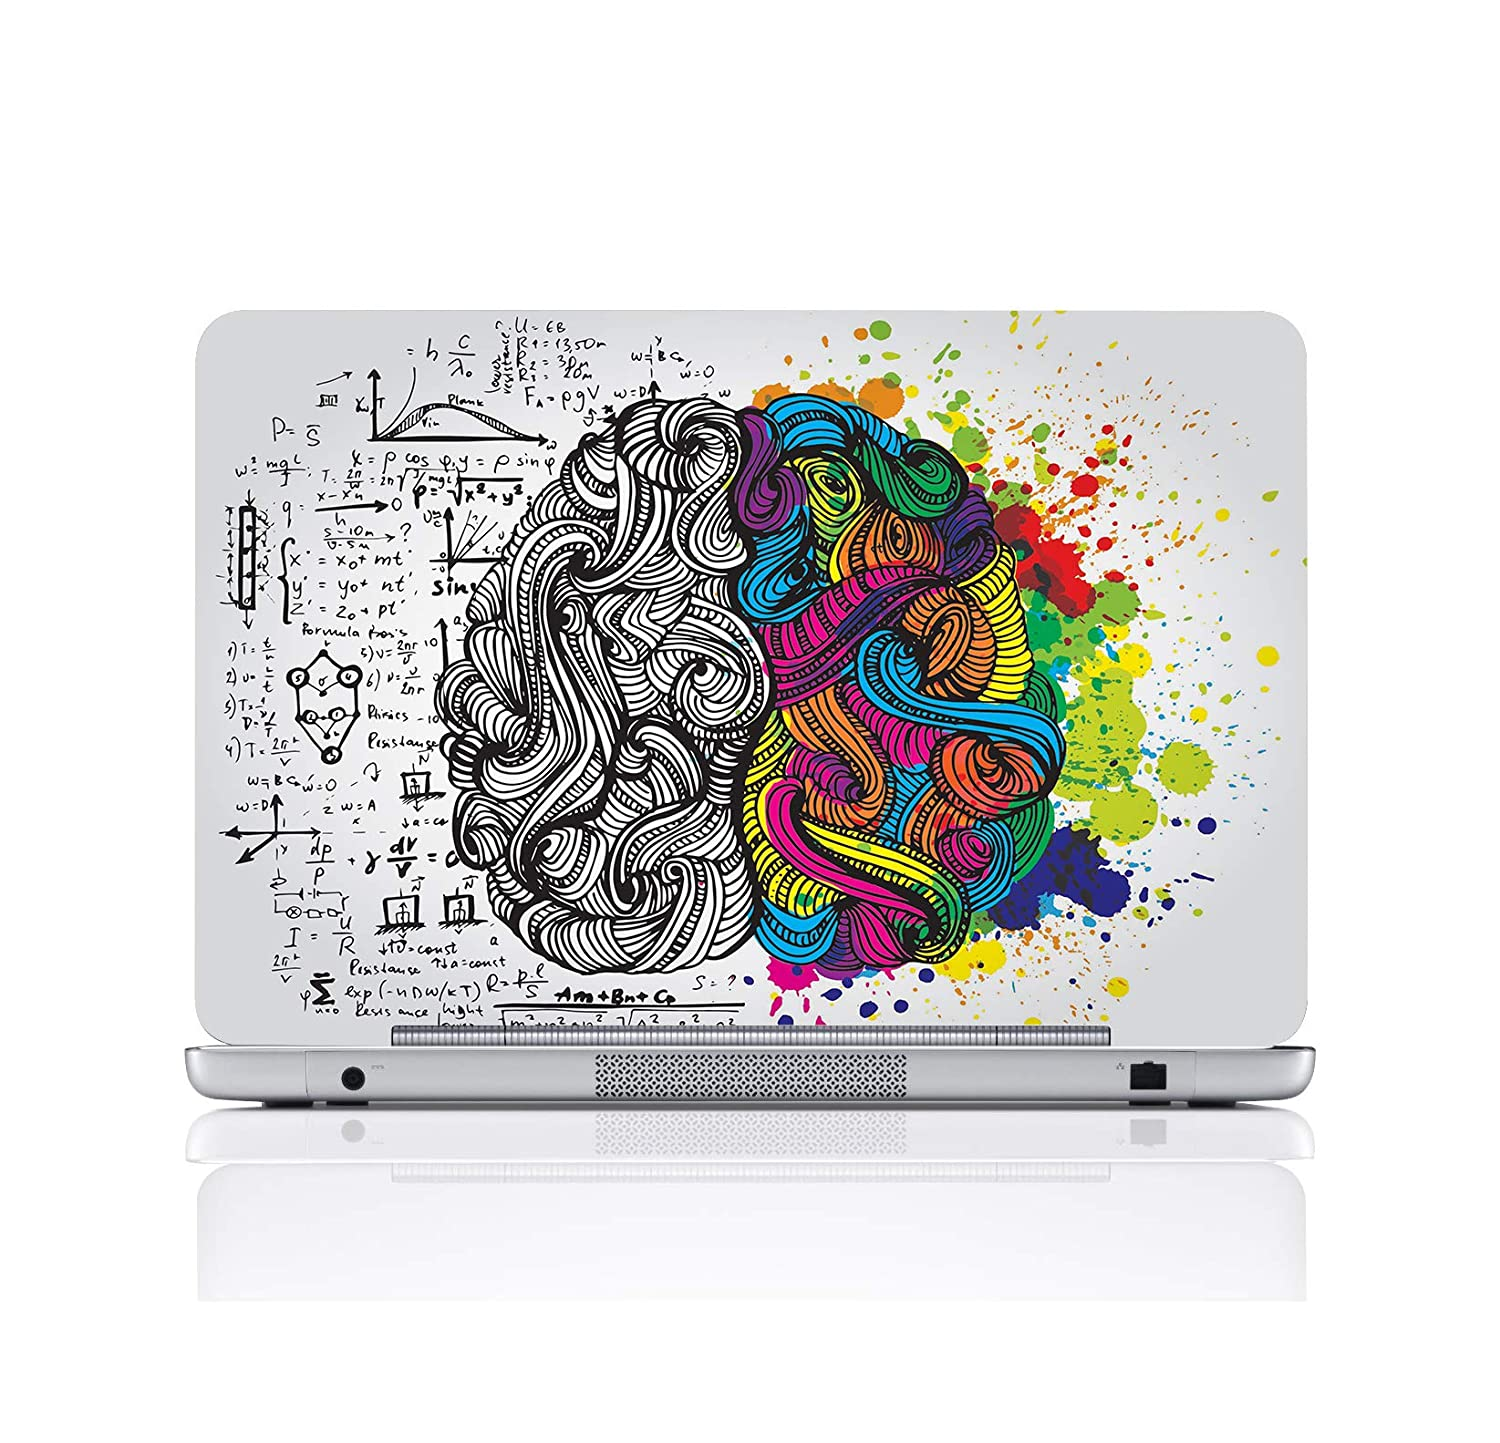 Ladecor laptop skin cover designer stickers print fits for all models up to 17 inch screen size 15 5 inch x 10 5 inch buy ladecor laptop skin cover